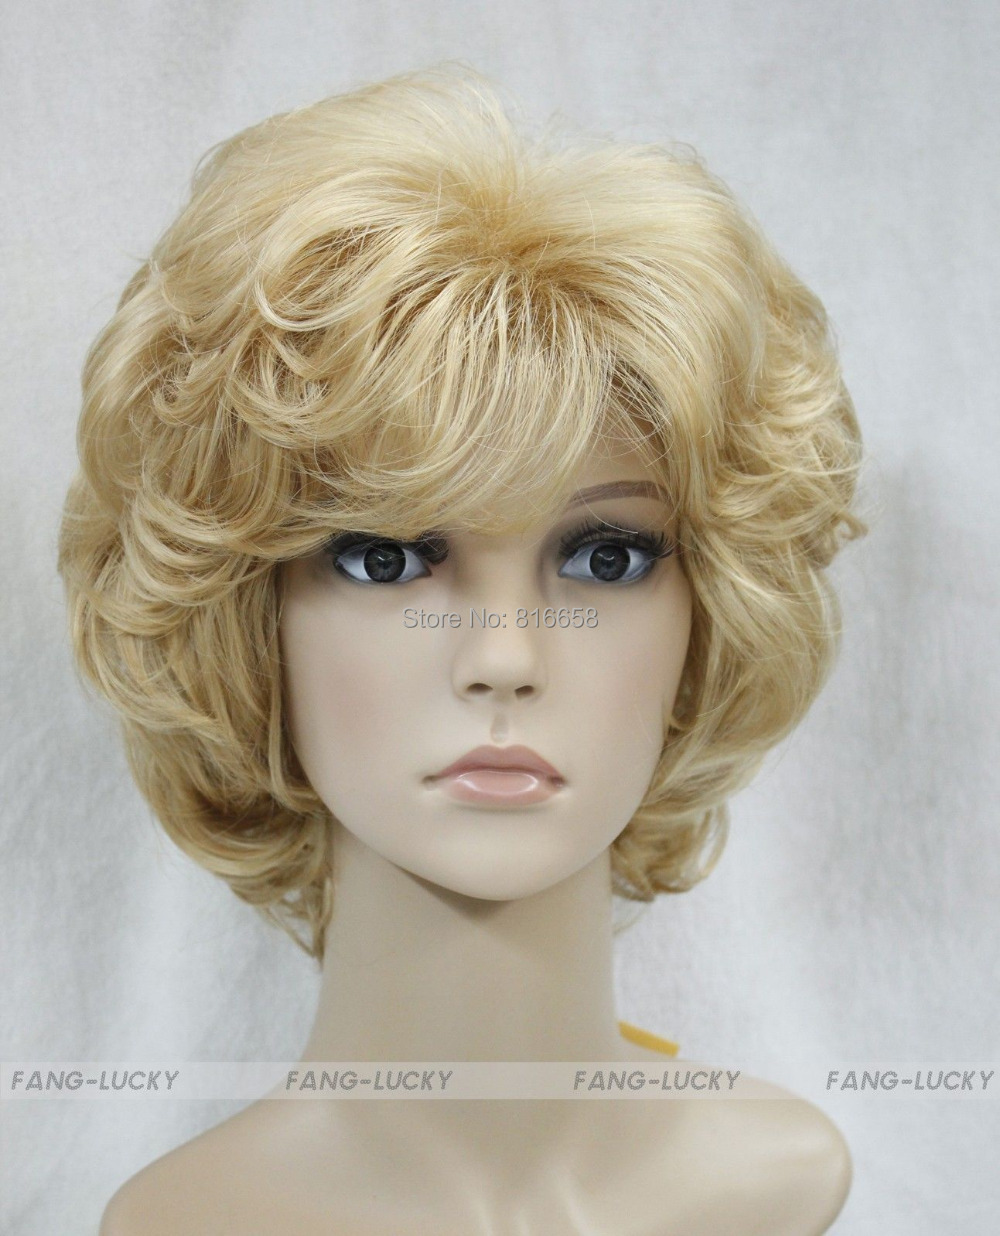 Free shipping@@Blonde Golden Short Curly Women Female Lady Hair Full Wig<br><br>Aliexpress